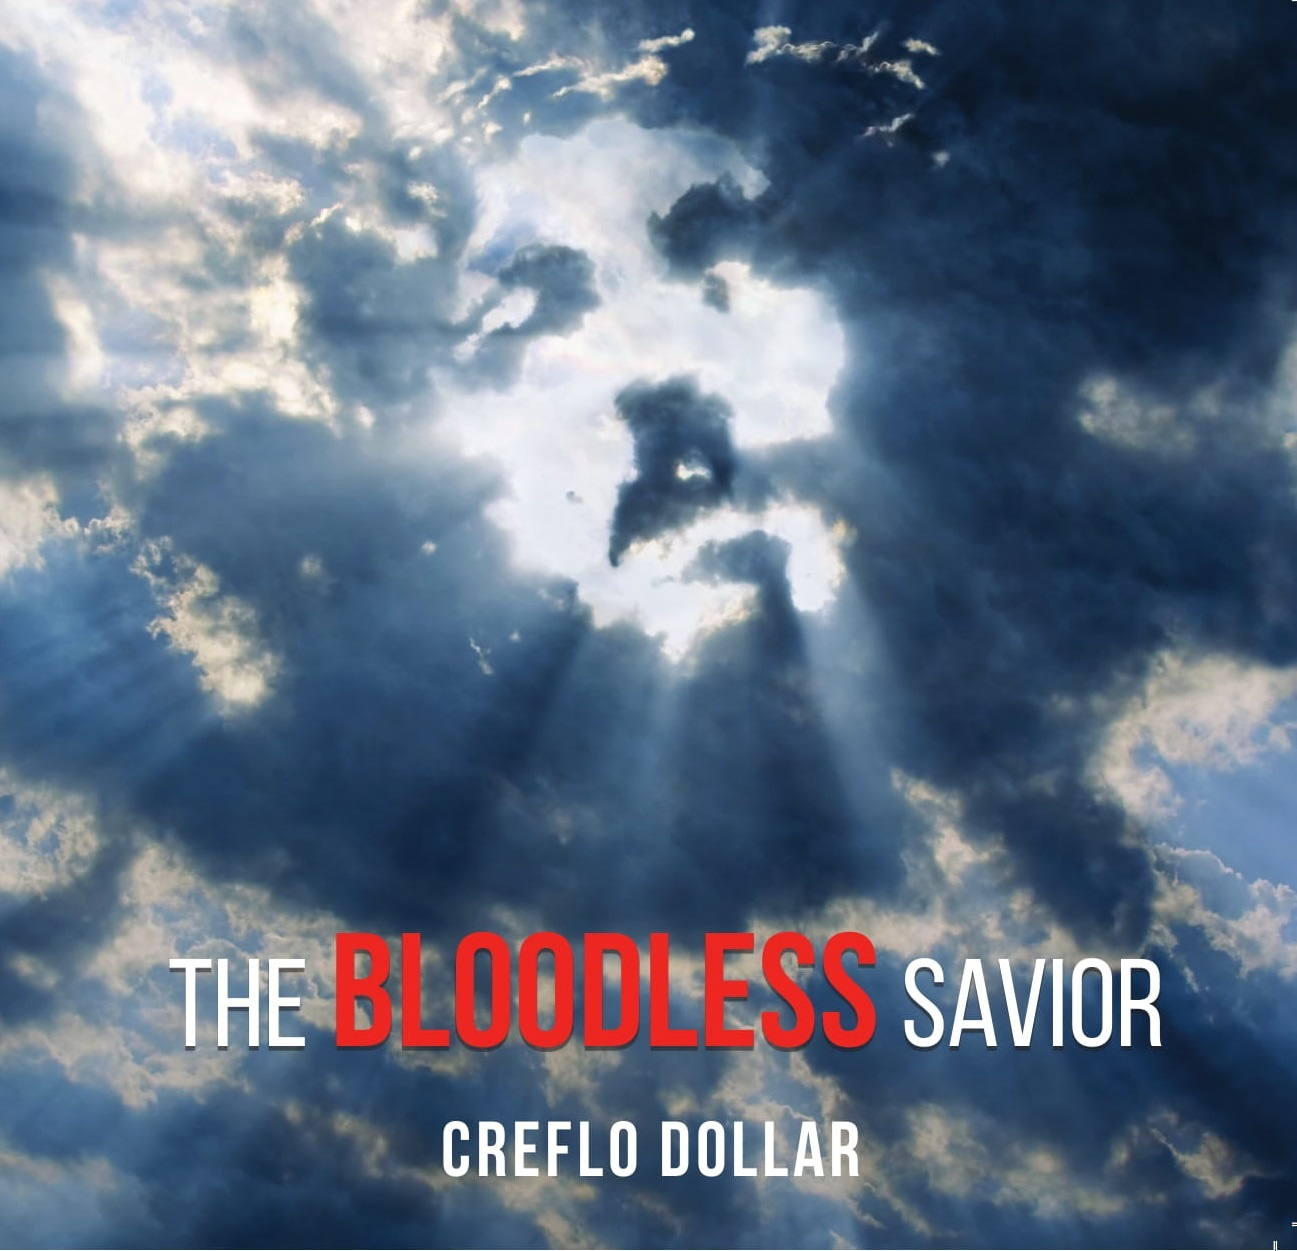 The Bloodless Savior - CD Single